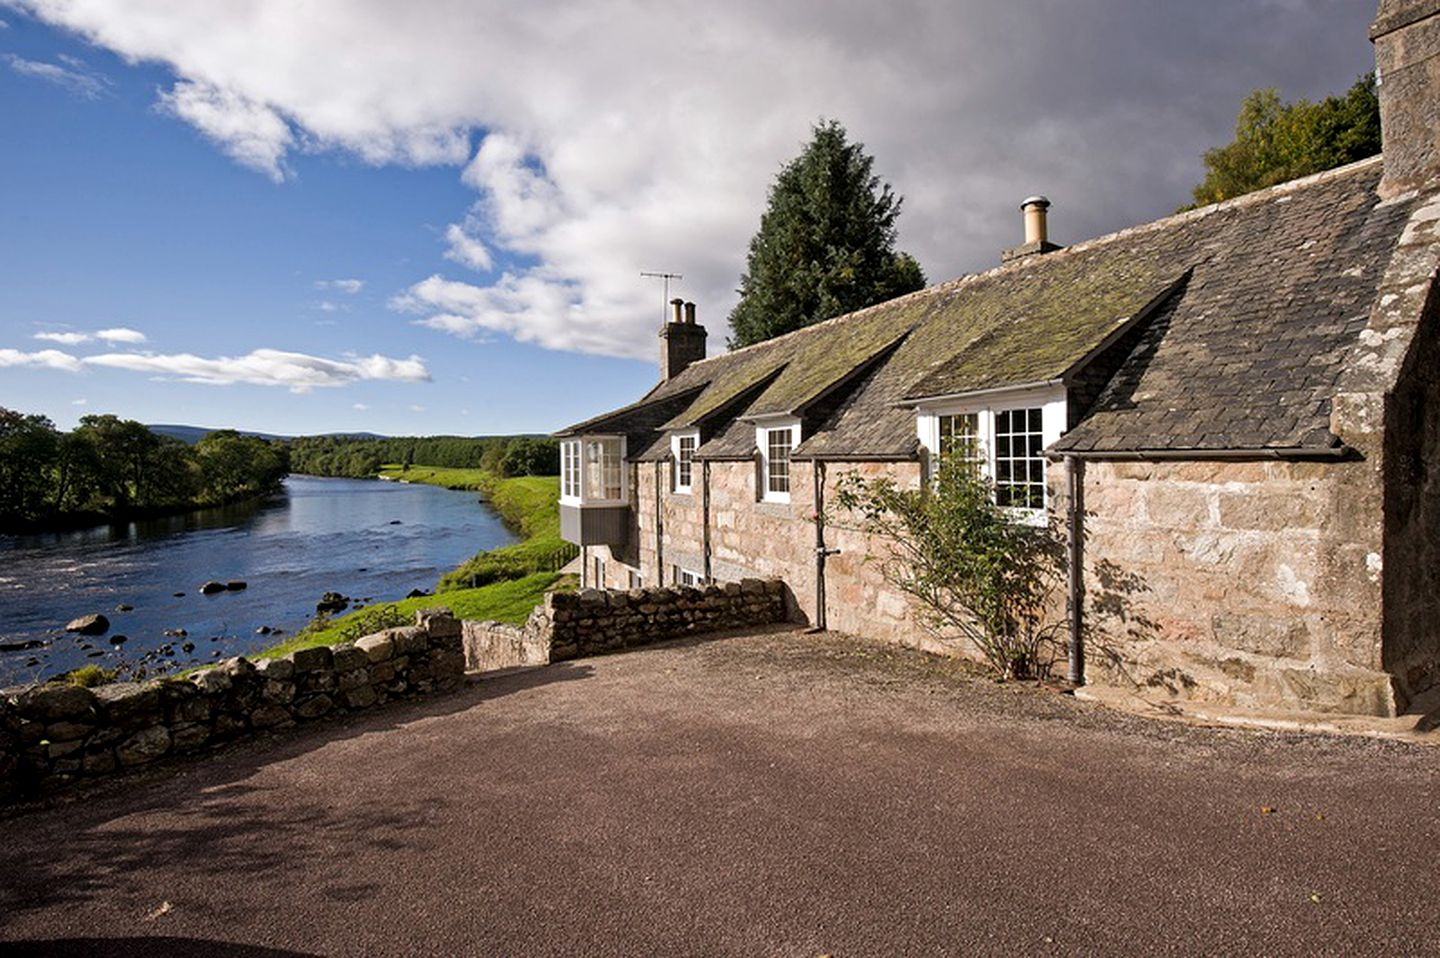 Cottages (Aboyne, Scotland, United Kingdom)